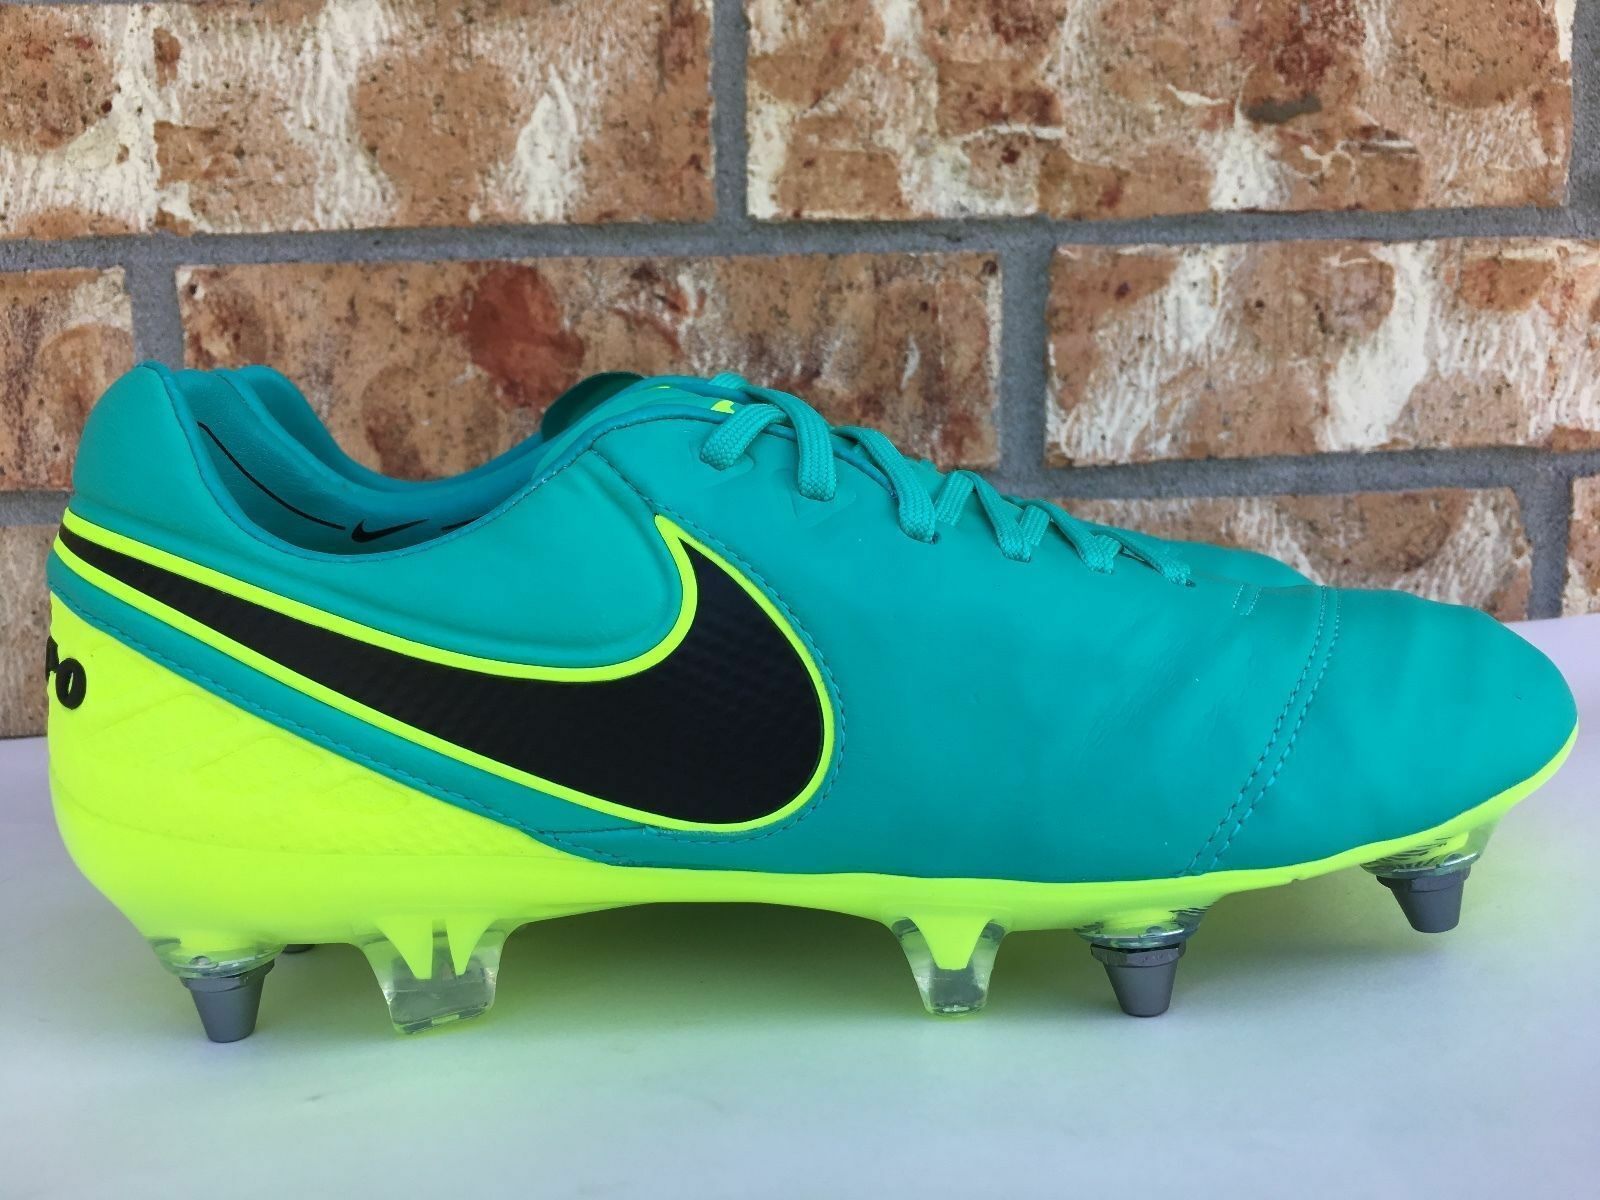 dff6fbe23 NIKE TIEMPO LEGEND VI SG PRO SOCCER SOCCER SOCCER CLEATS SIZE 12.5 JADE  GREEN VOLT 819680-308 1c977b